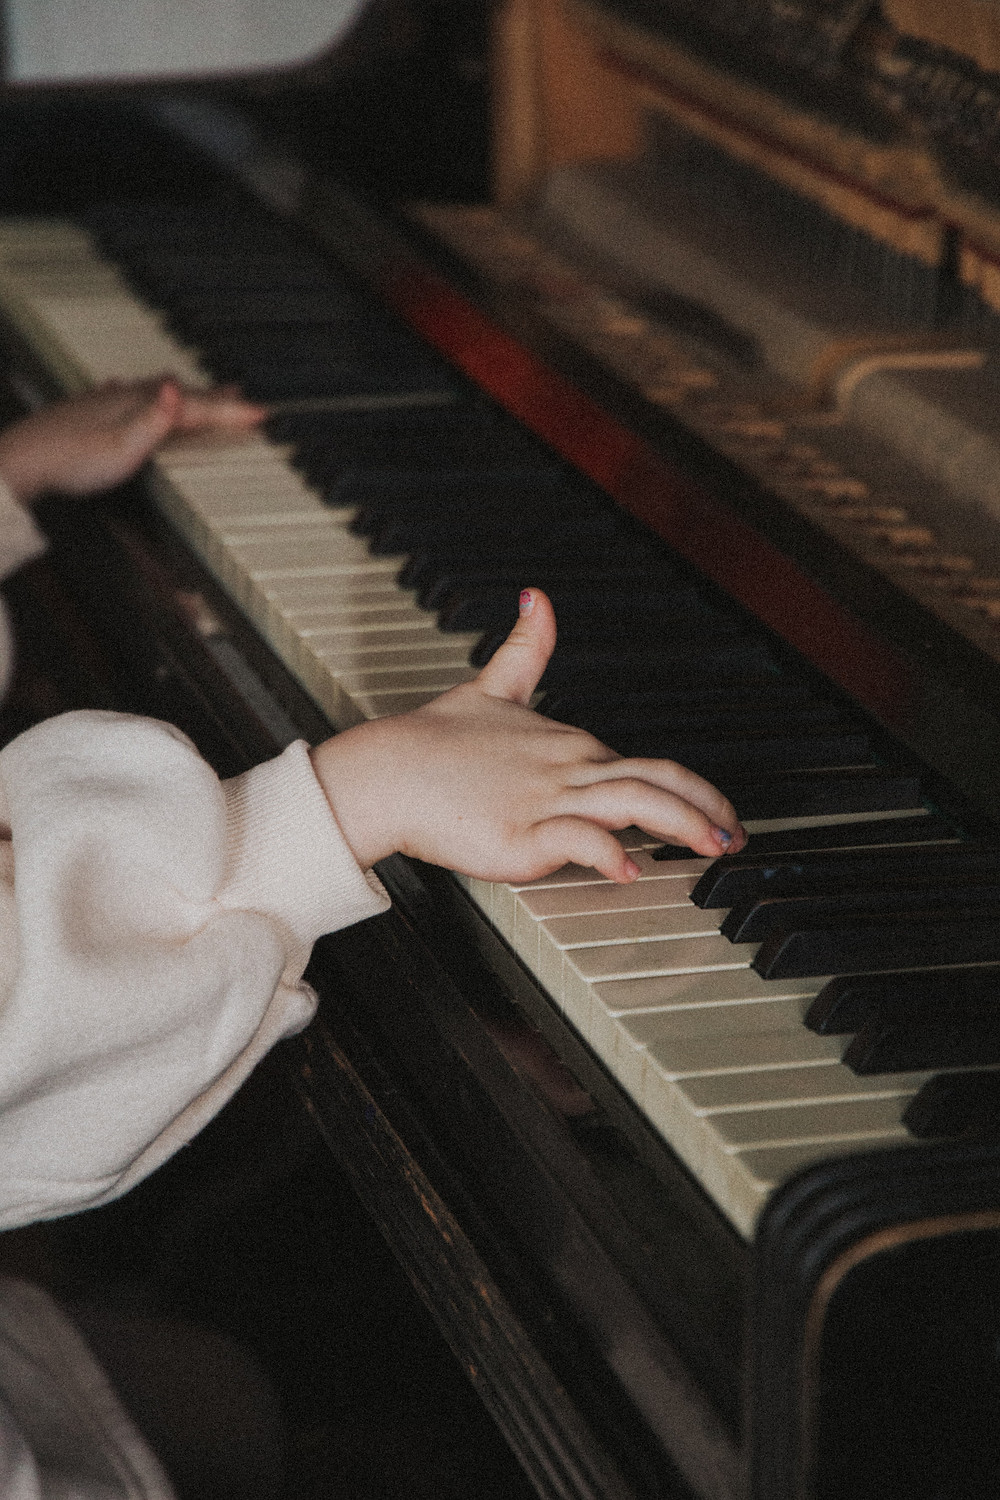 young piano player's hands